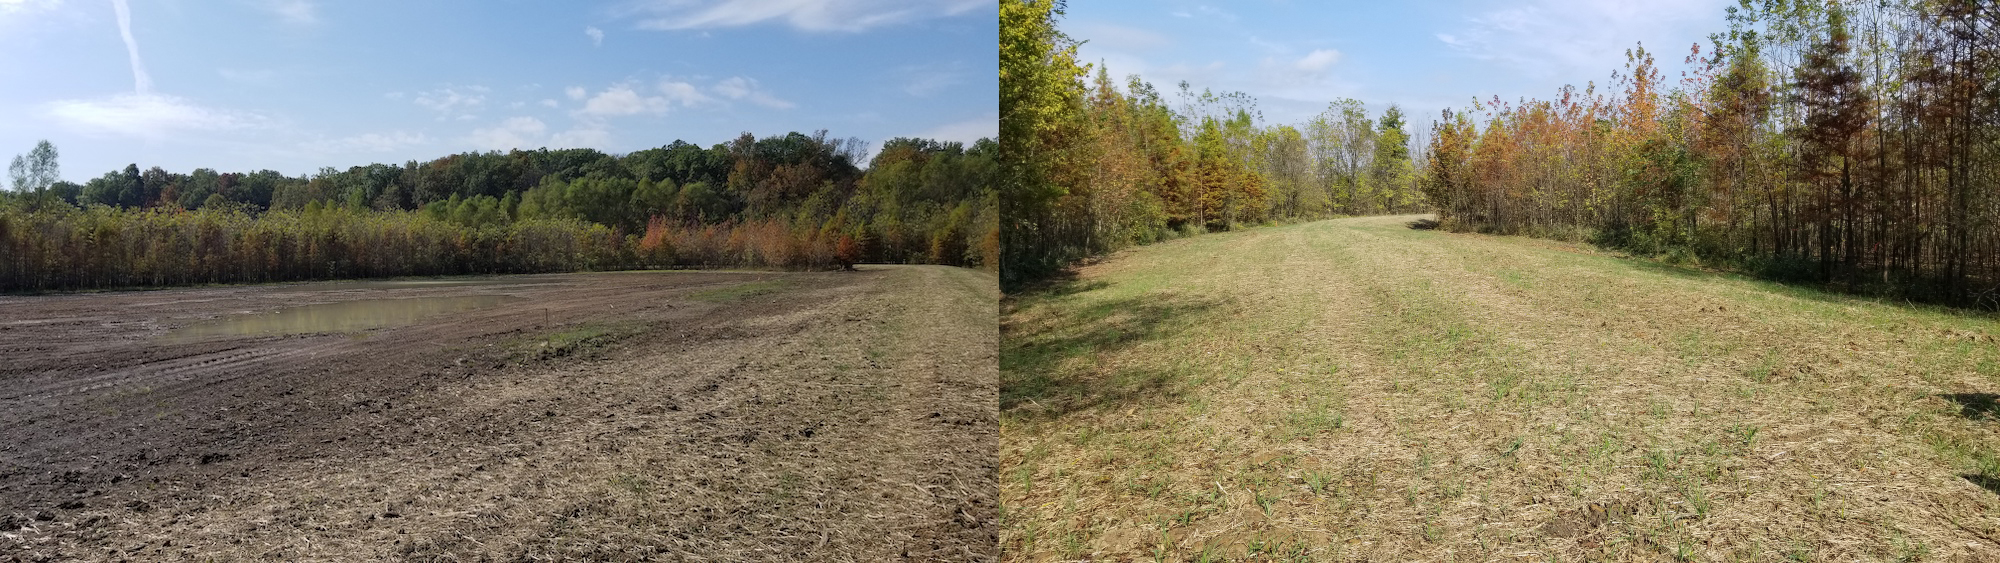 Two images from different perspectives of a newly created low level berm to control drainage of water. In the background of the images are trees.